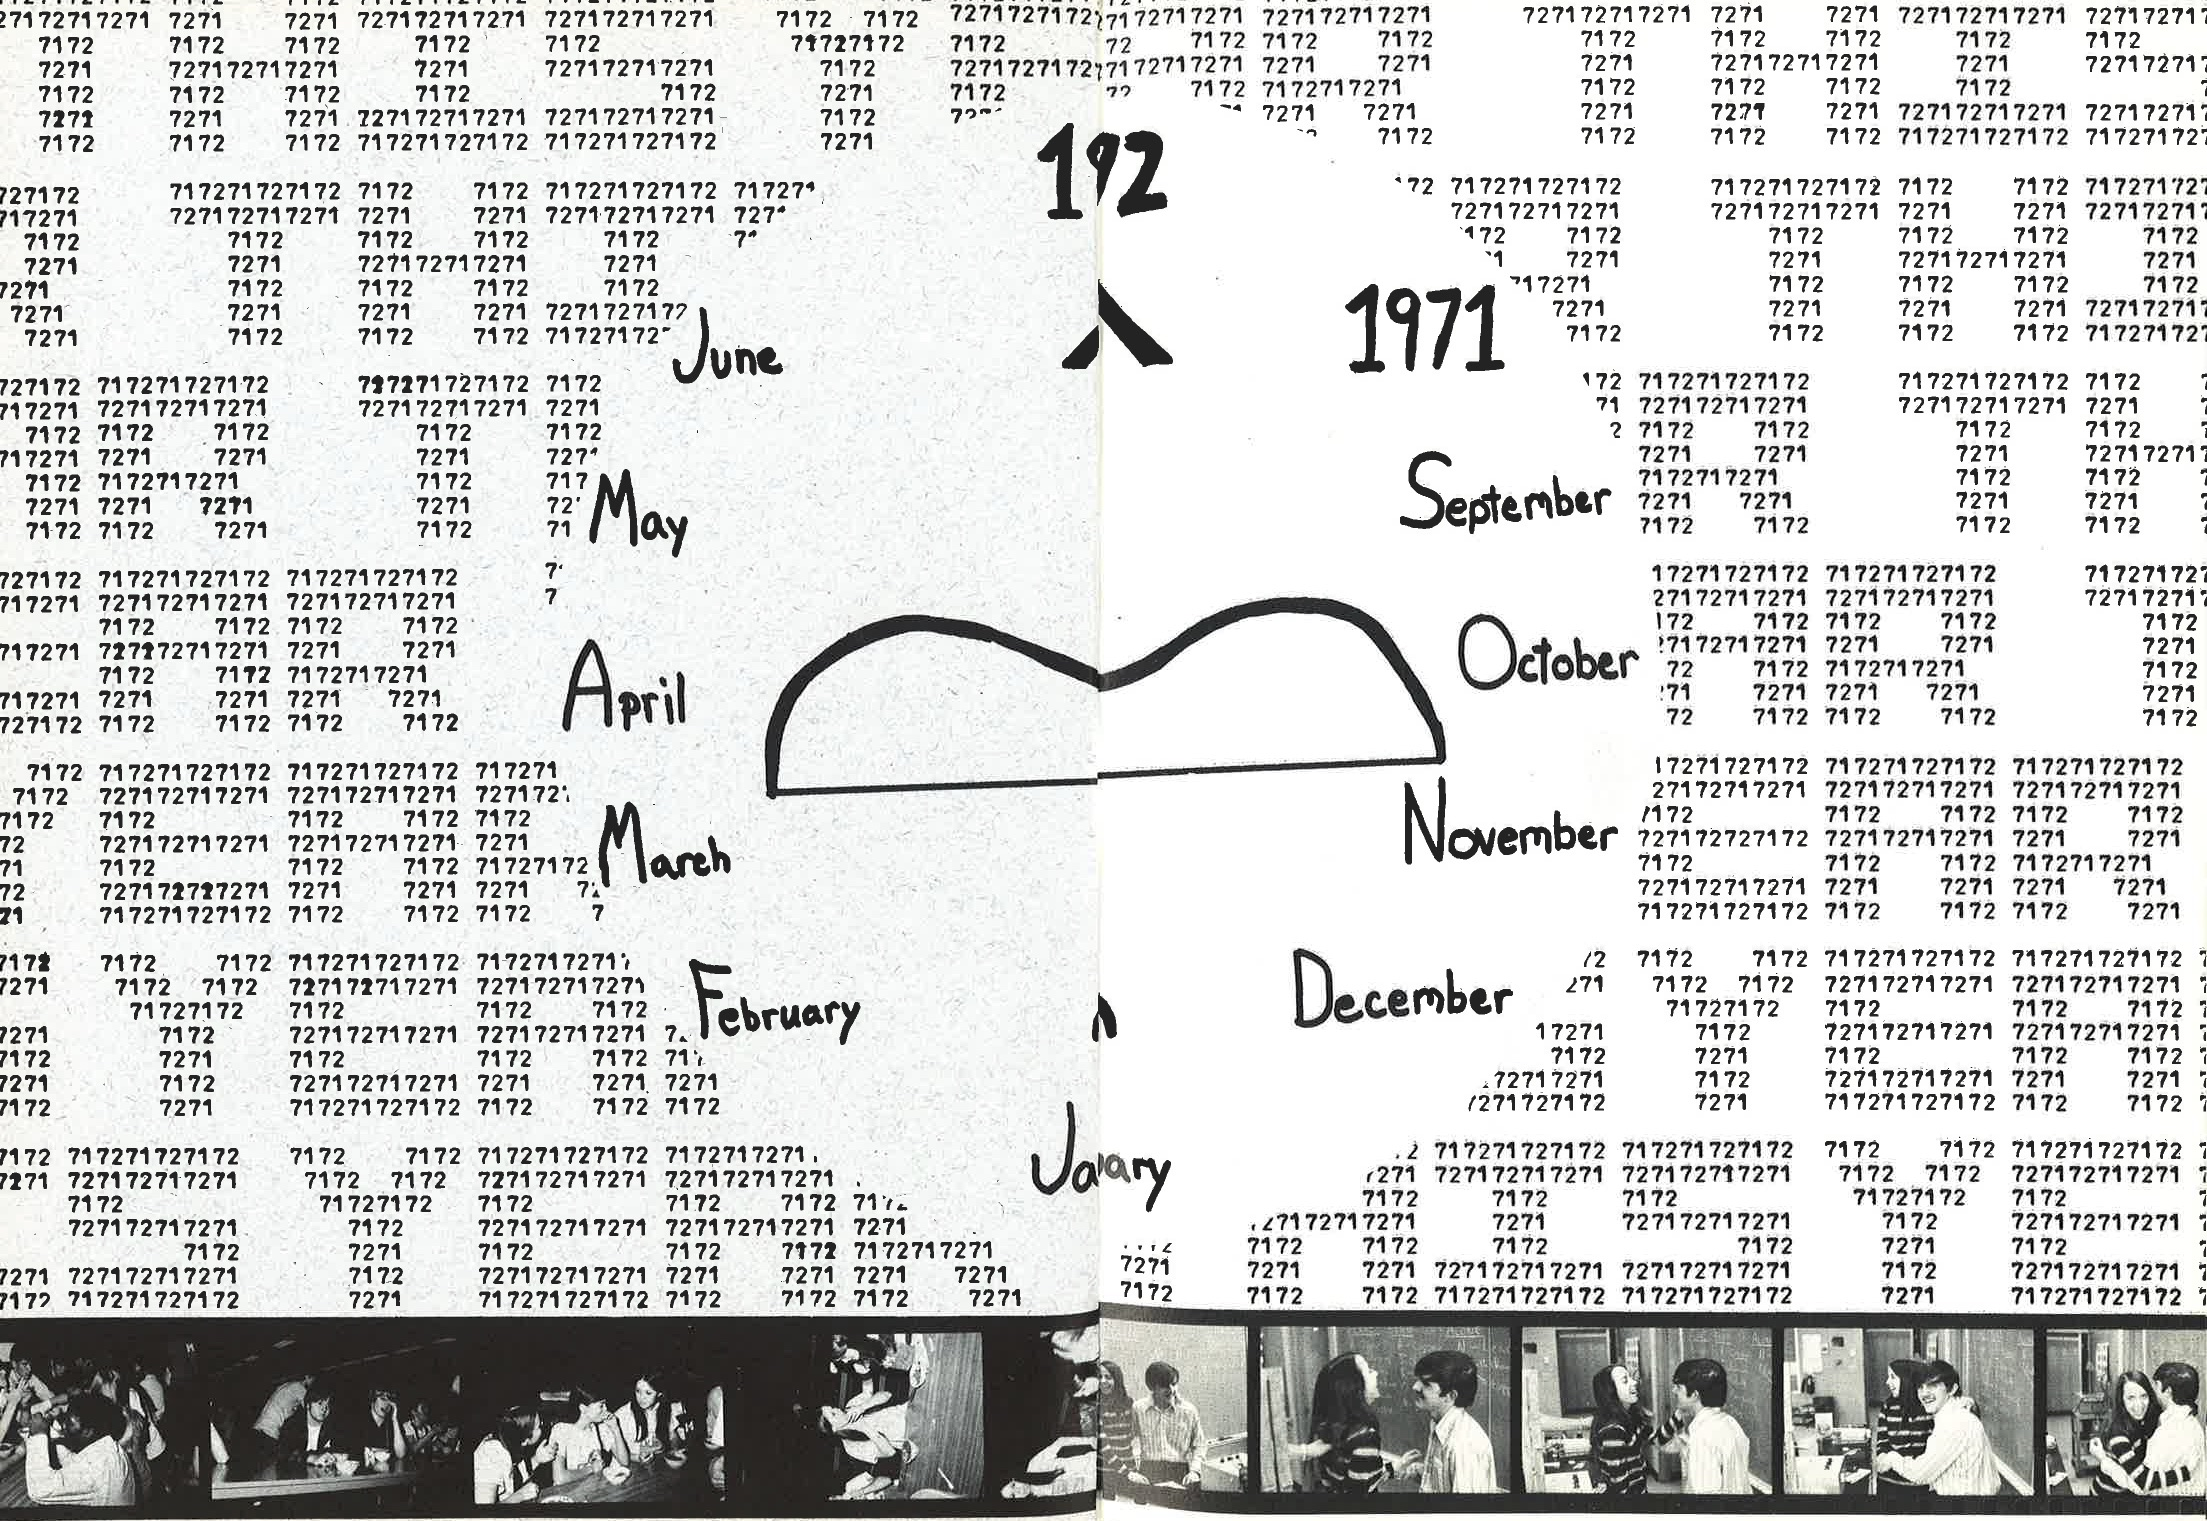 1972_Yearbook_16-17.jpg